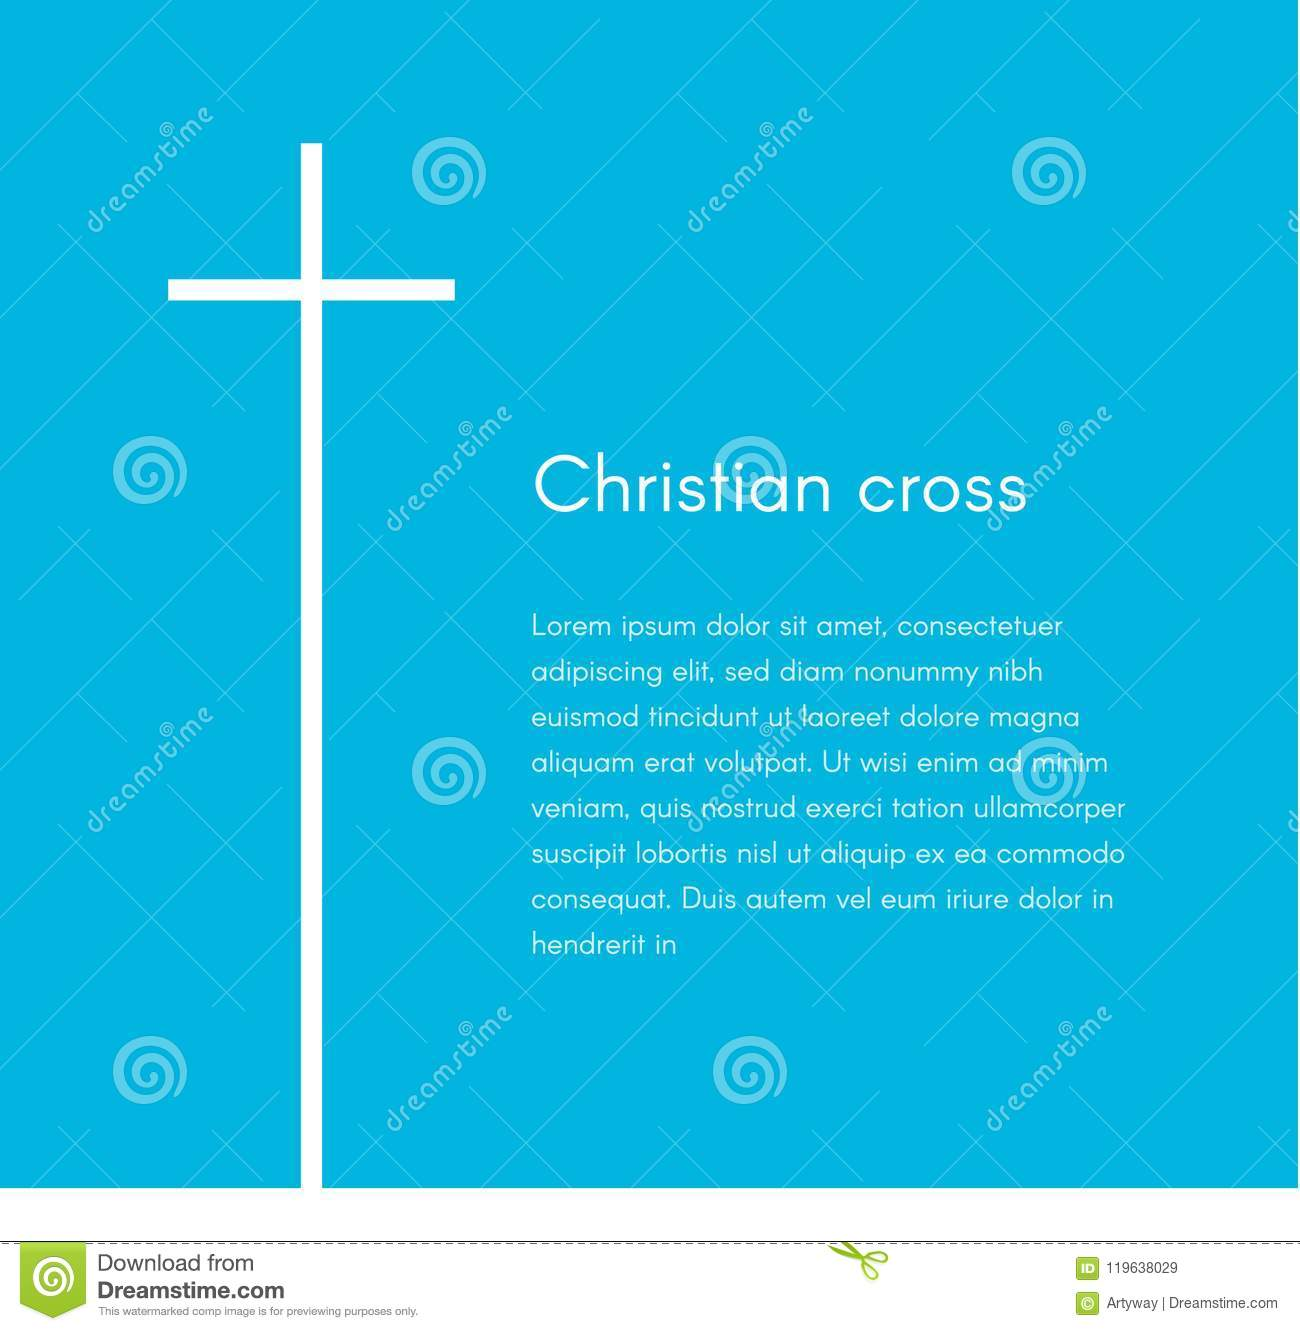 Christian cross silhouette. Religion symbol. White cross on blue background with text, vector illustration template for